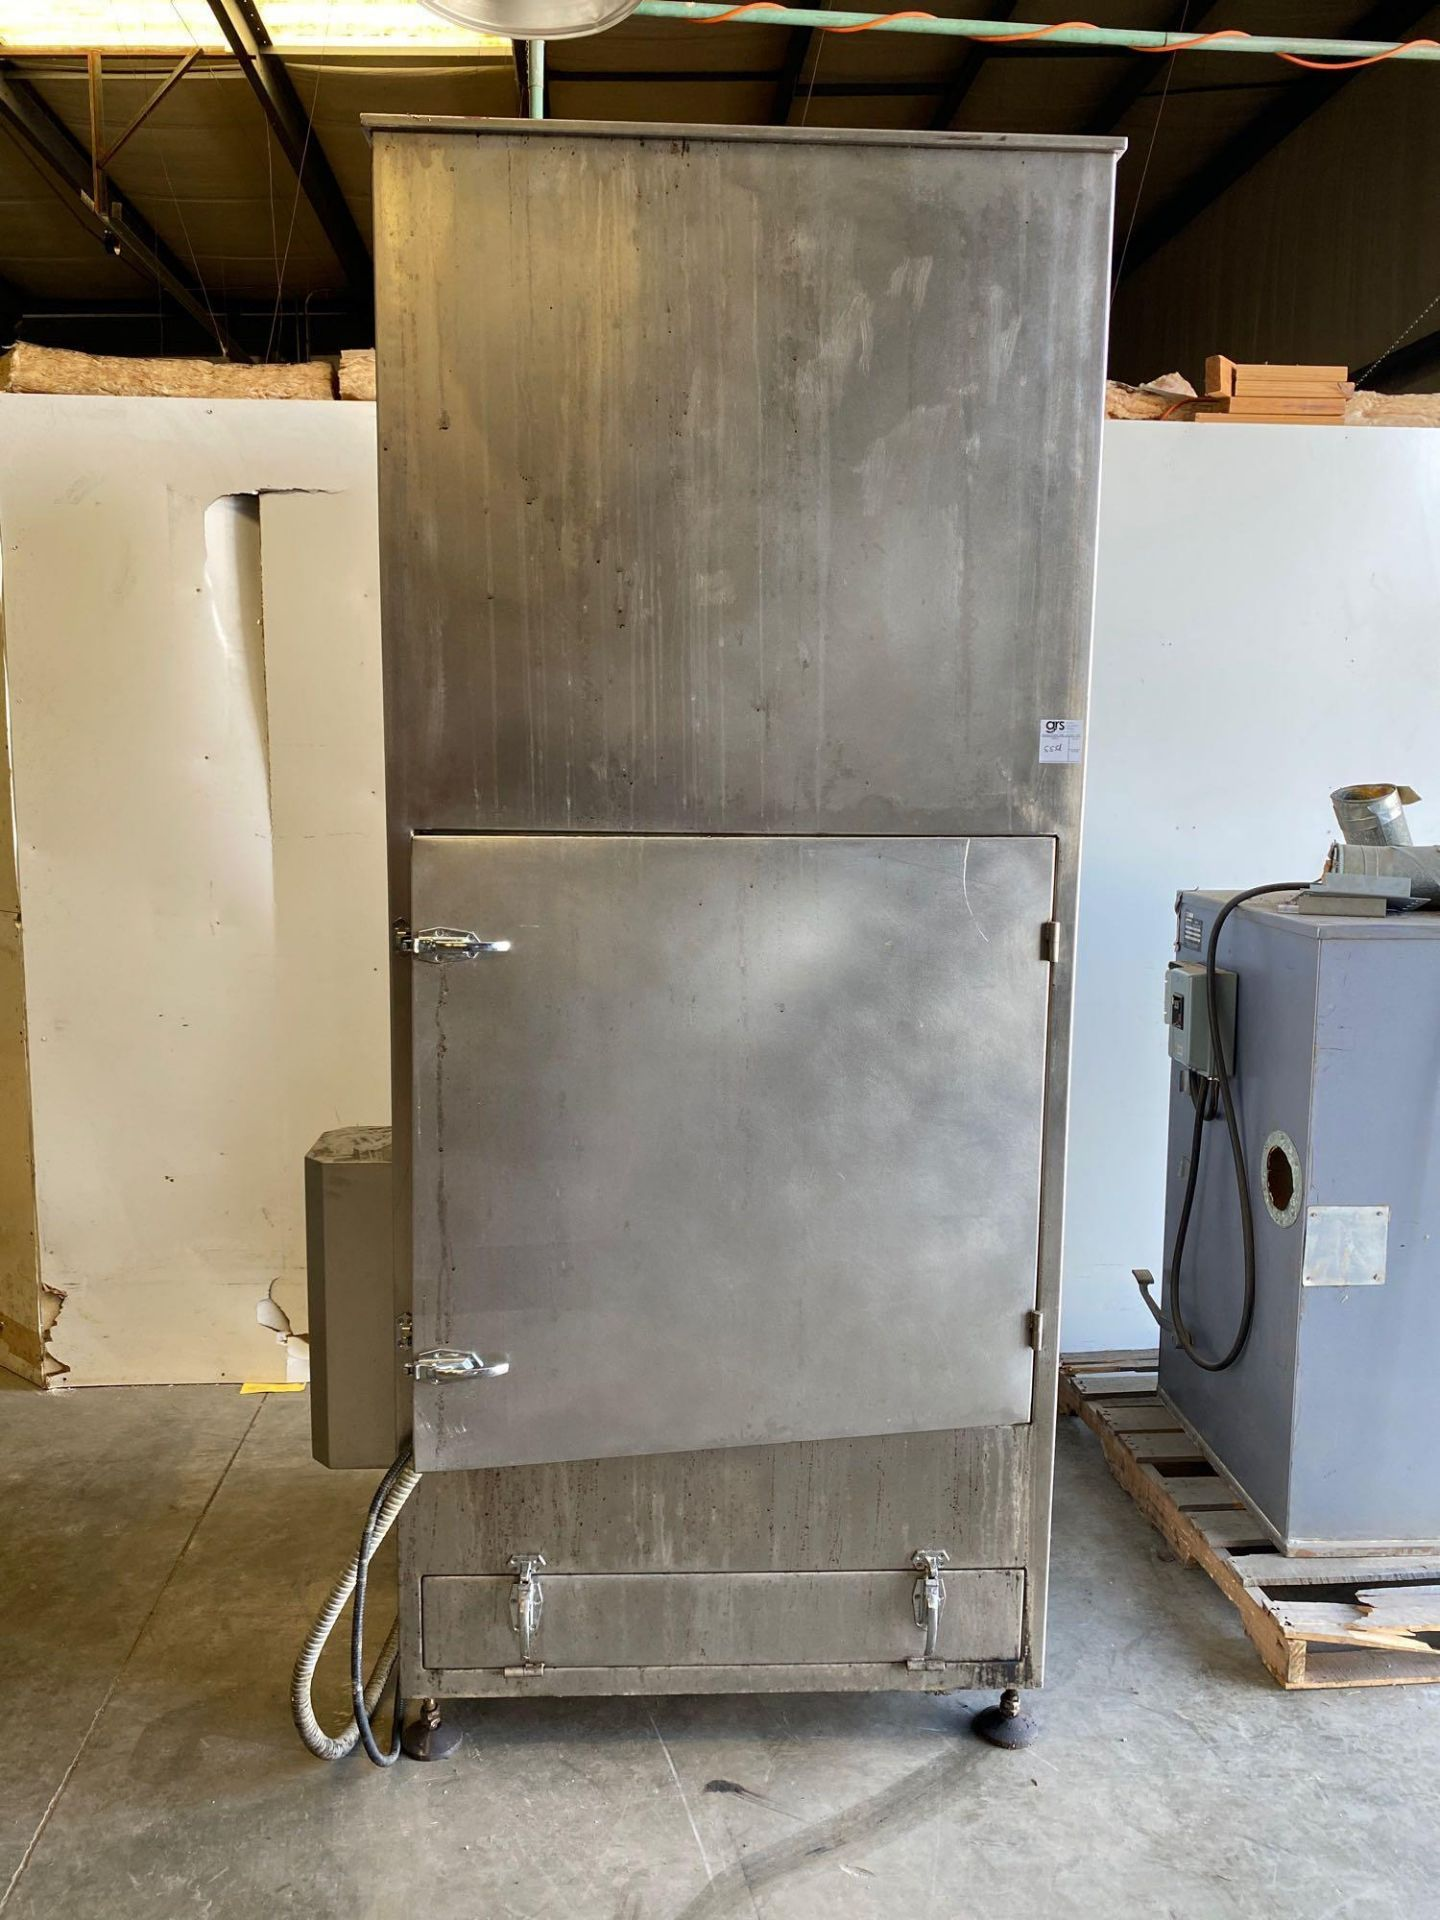 Air Exhaust Dust Collection Cabinet - Goes with Lot 555A